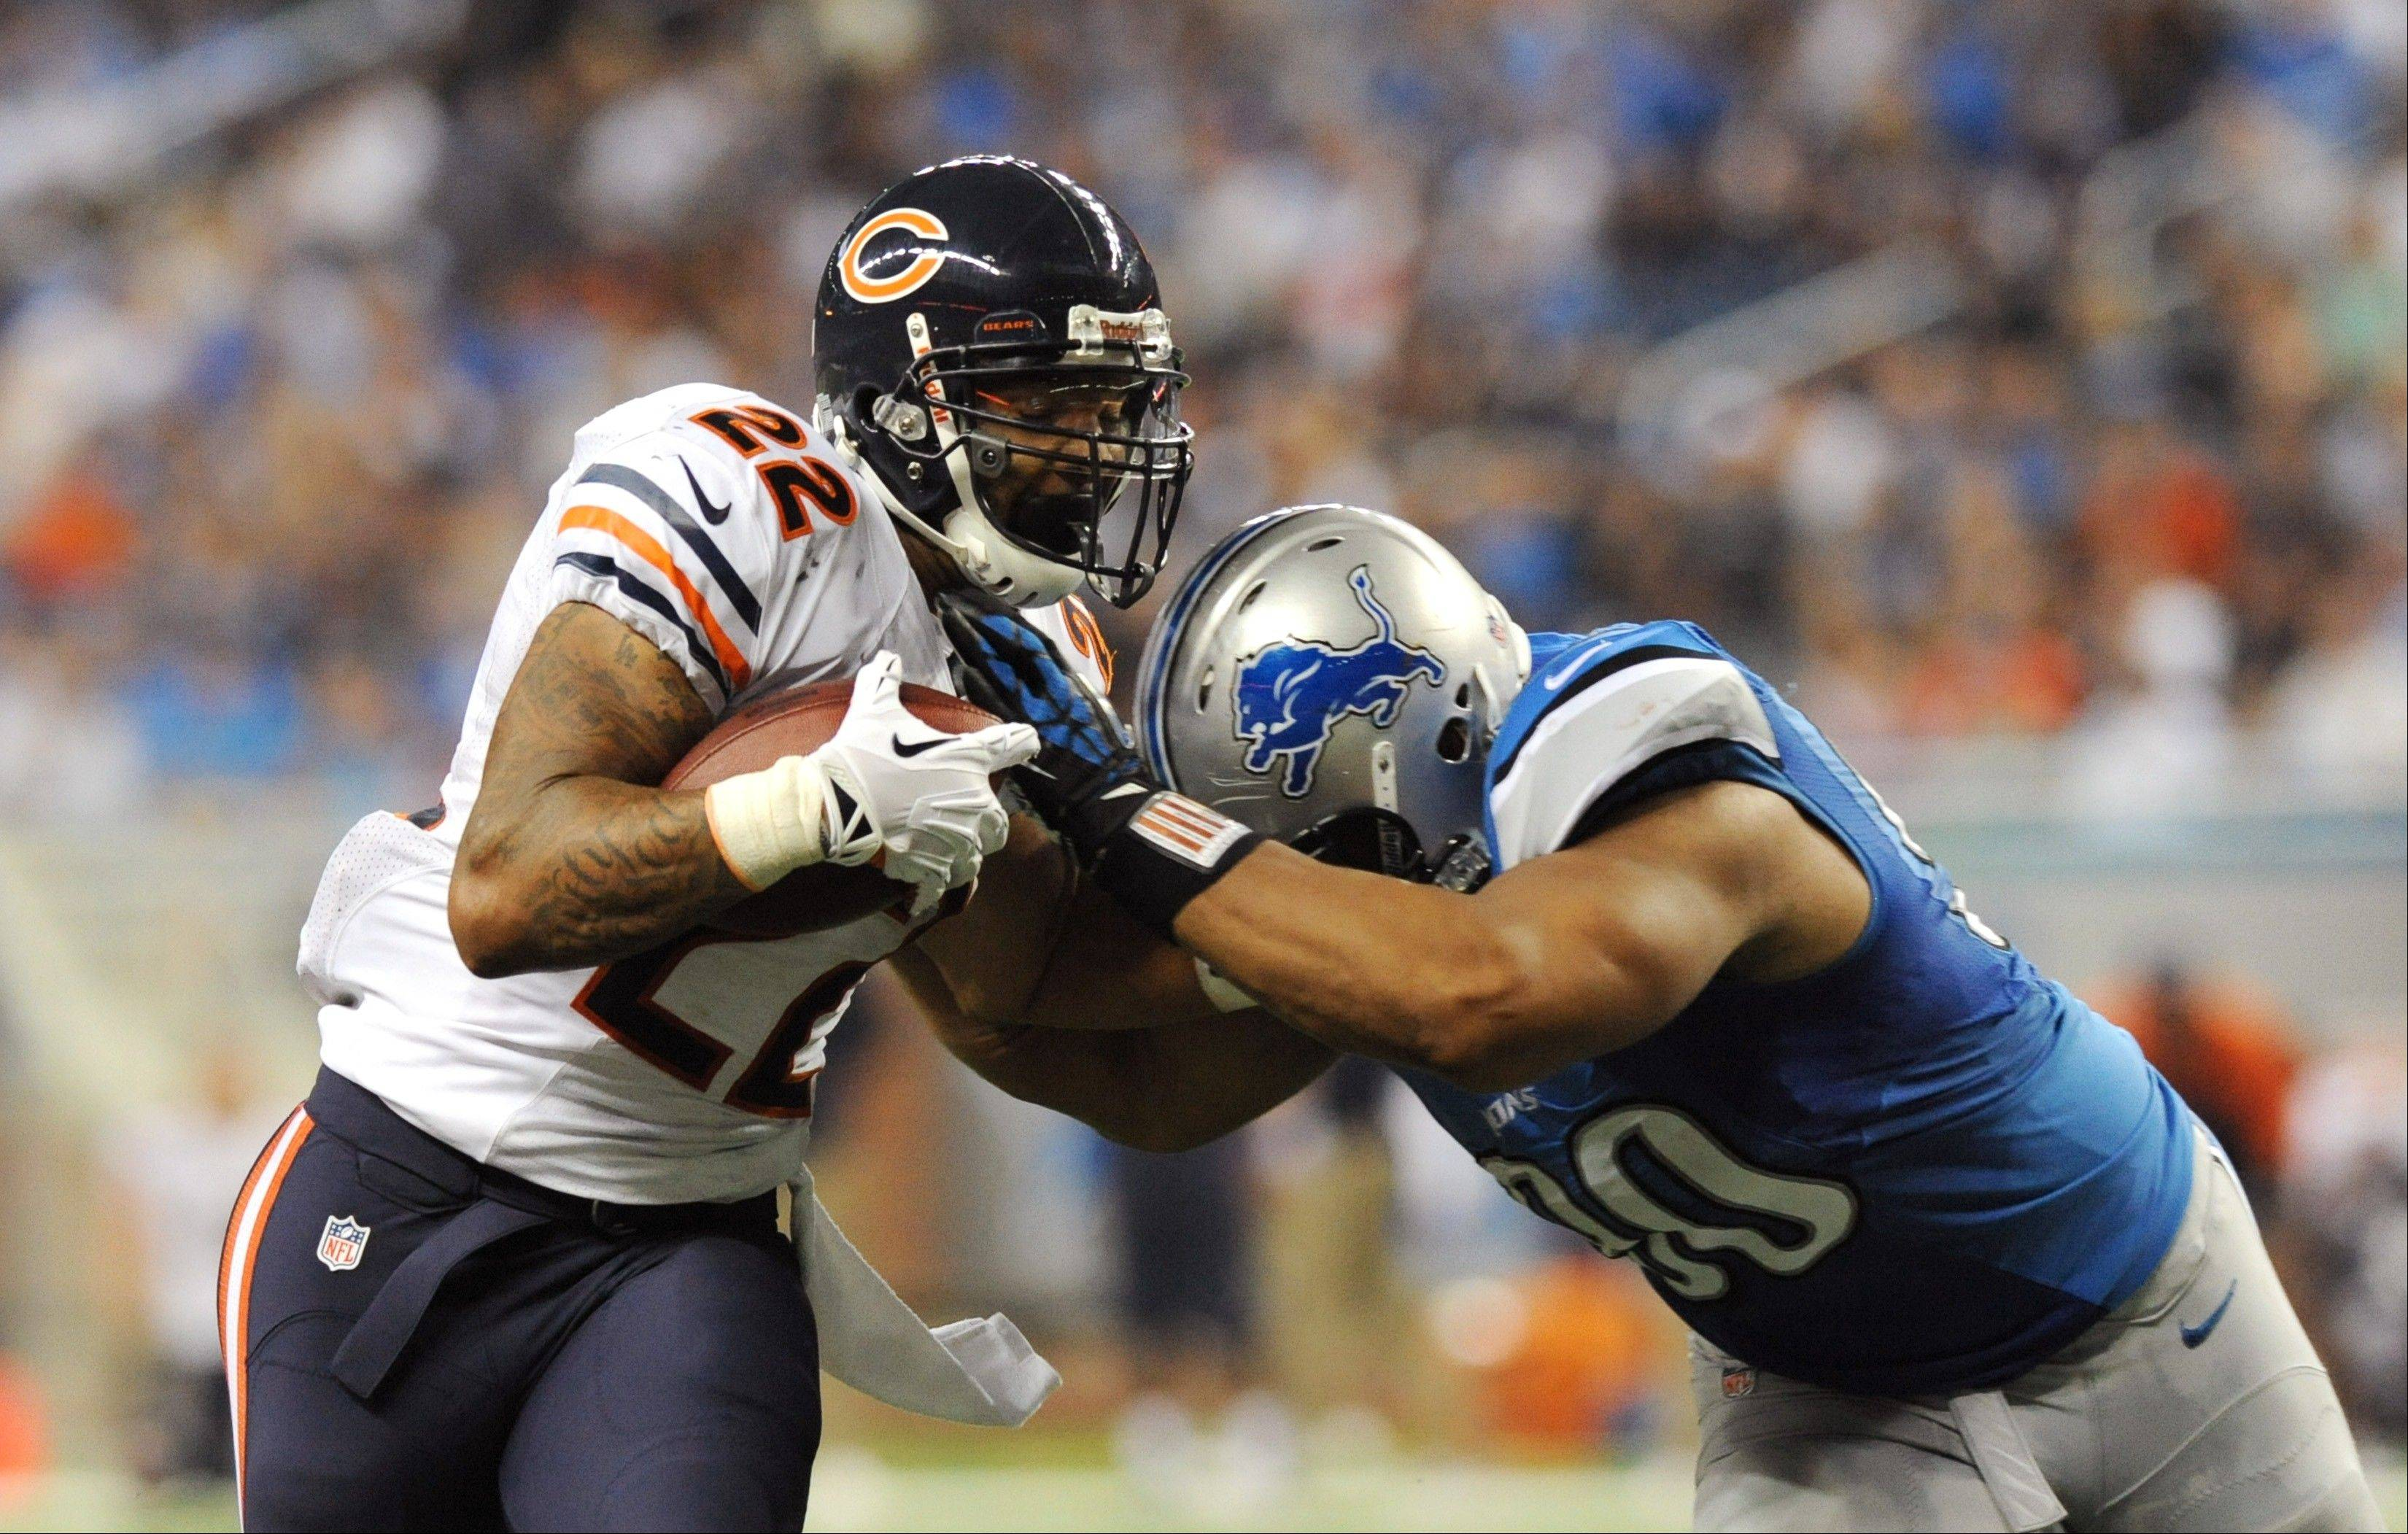 Bears running back Matt Forte is stopped by Detroit Lions defensive tackle Ndamukong Suh in the third quarter Sunday.